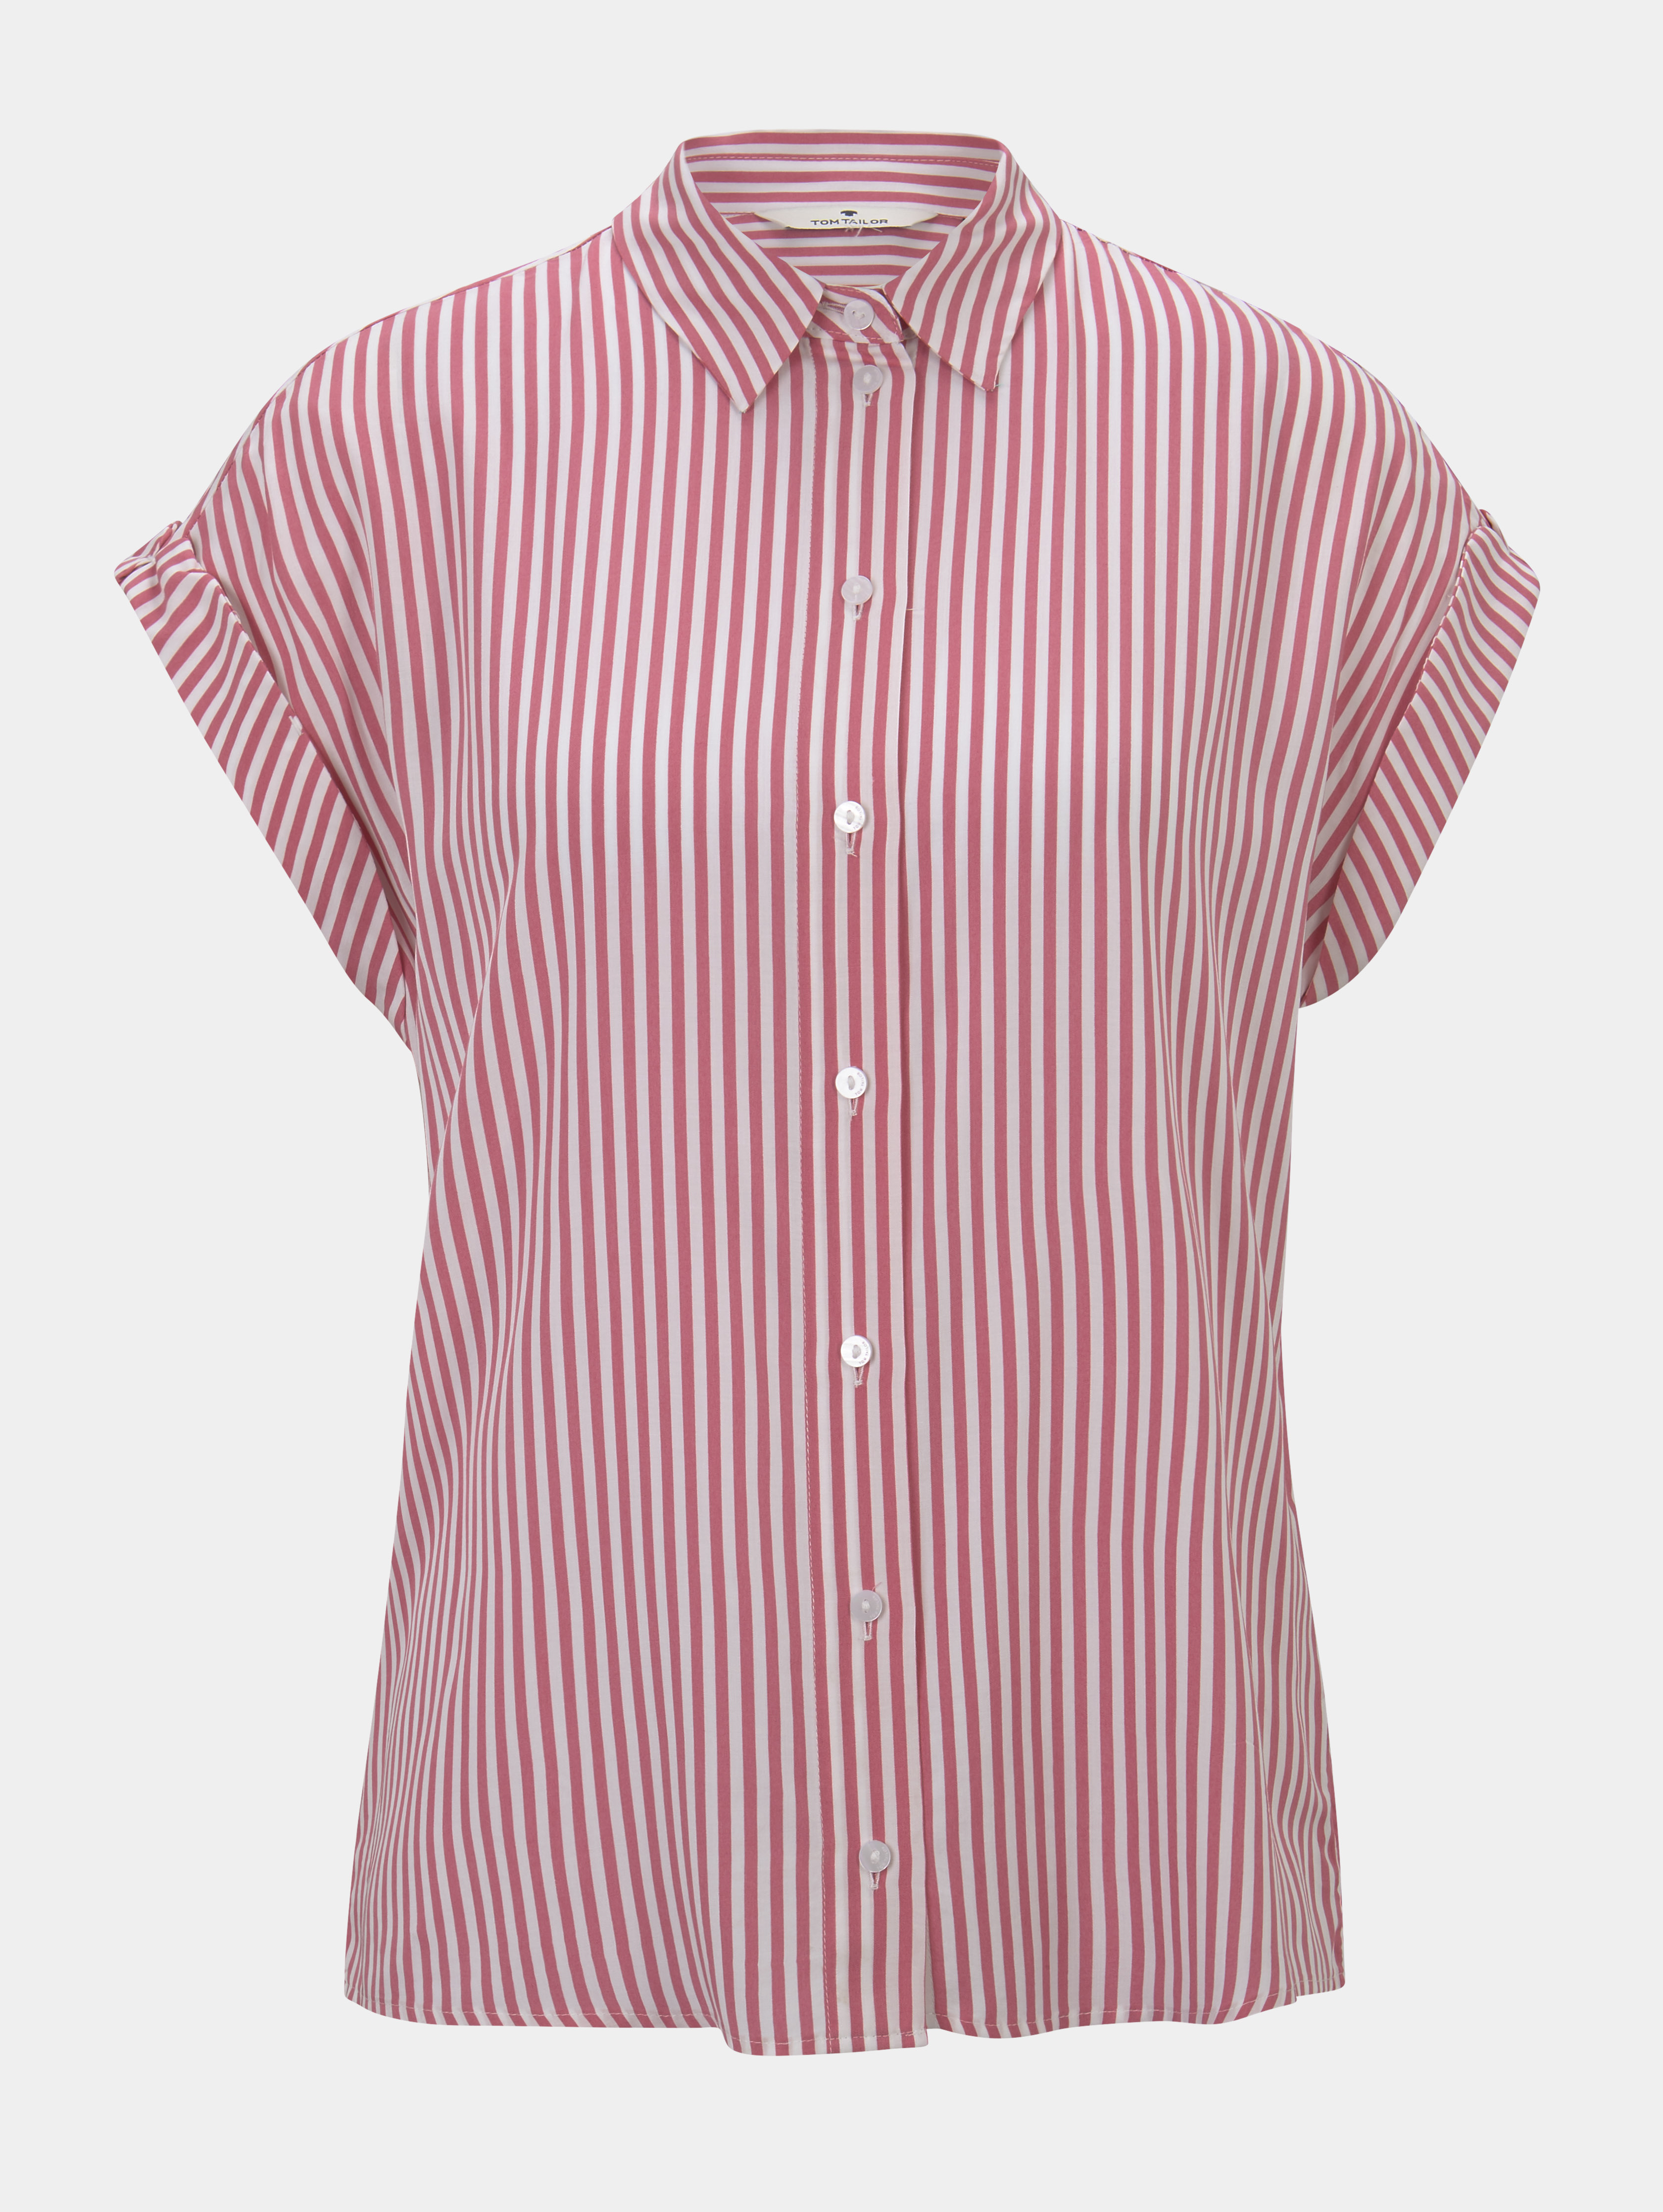 Bluse Striped Blouse Tom Tailor